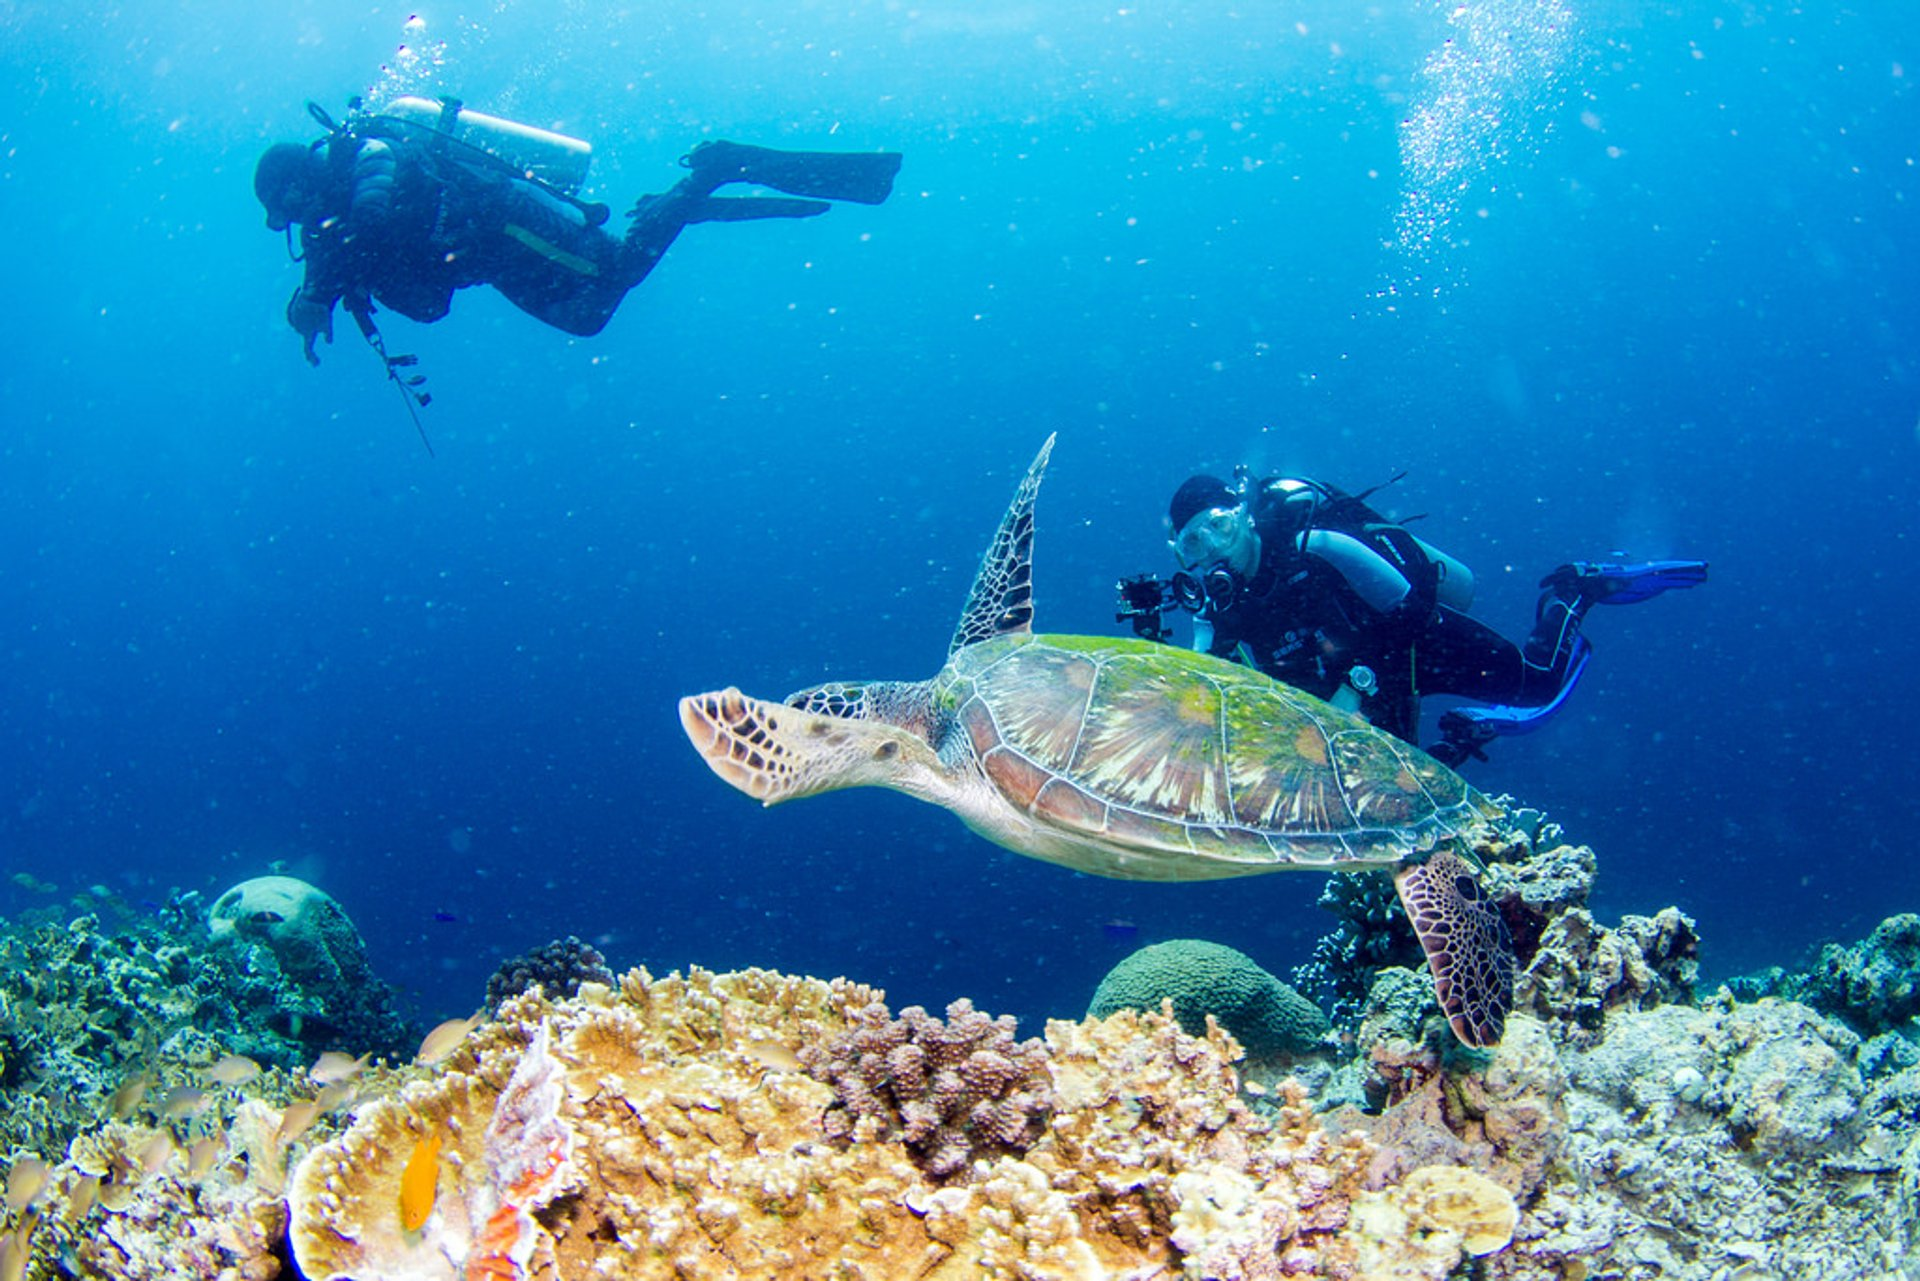 Snorkelling and Scuba Diving in Philippines - Best Season 2020